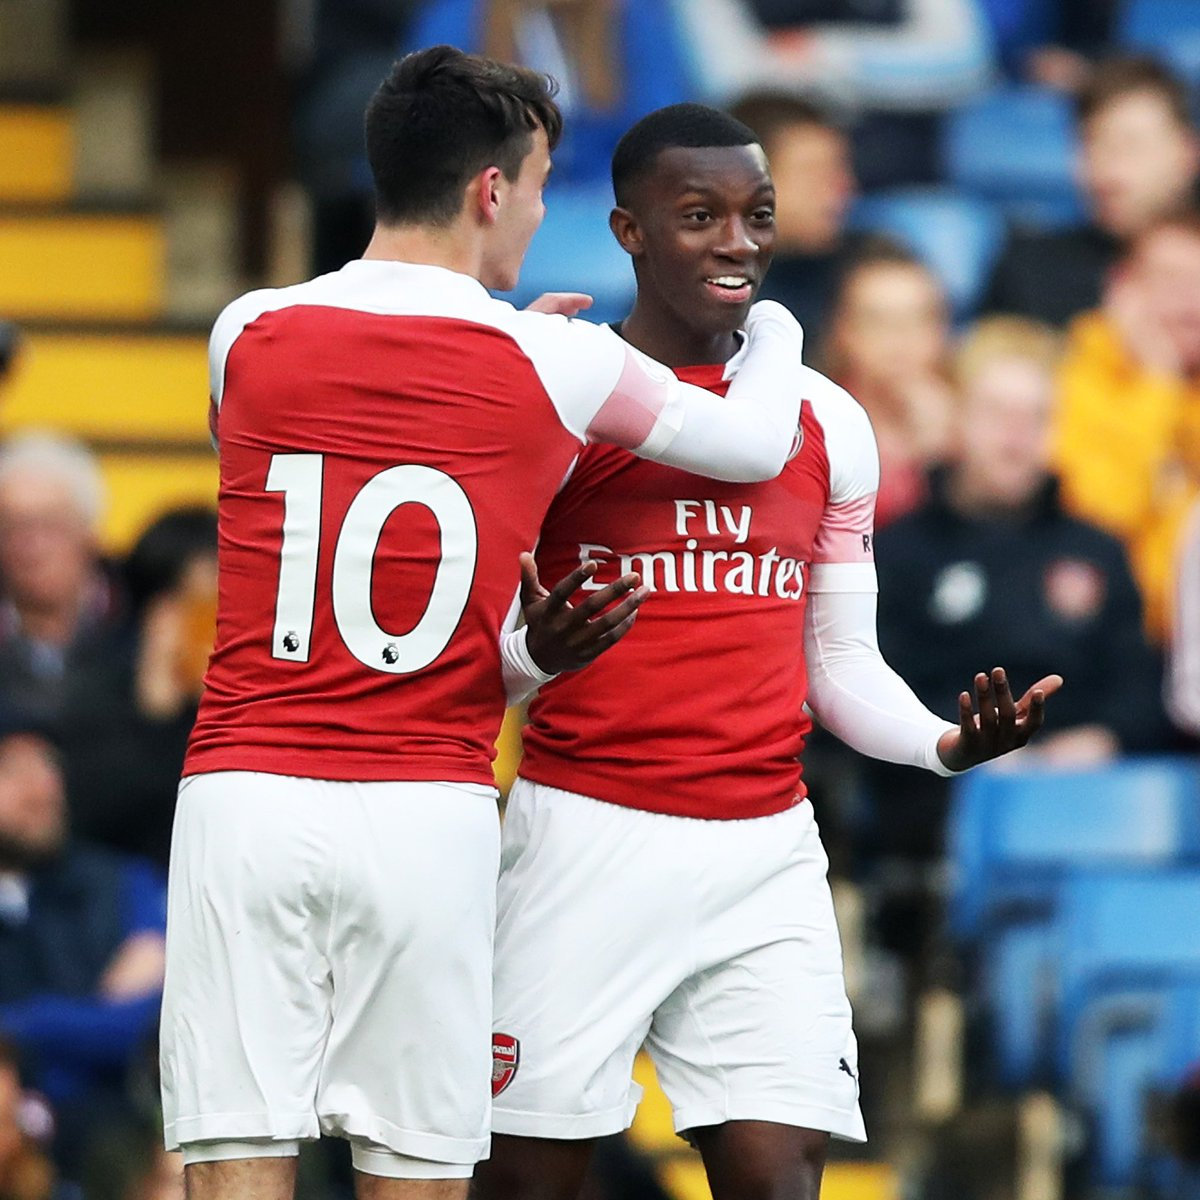 Eddie Nketiah scored twice as Arsenal defeated Chelsea in #PL2 last night.  Both goals were great.